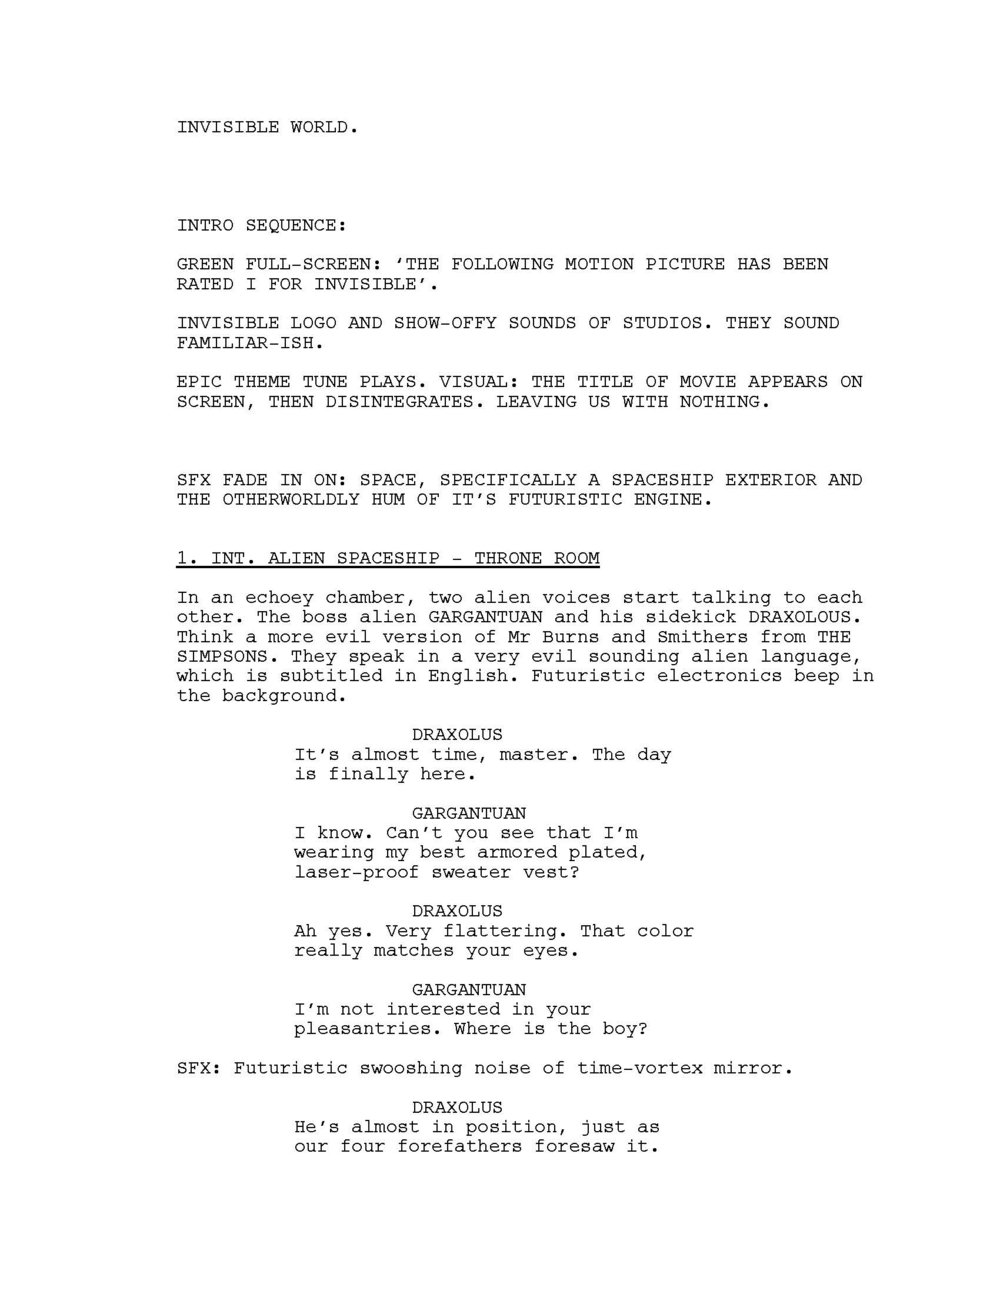 INVISIBLE WORLD SCRIPT_Page_002.jpg